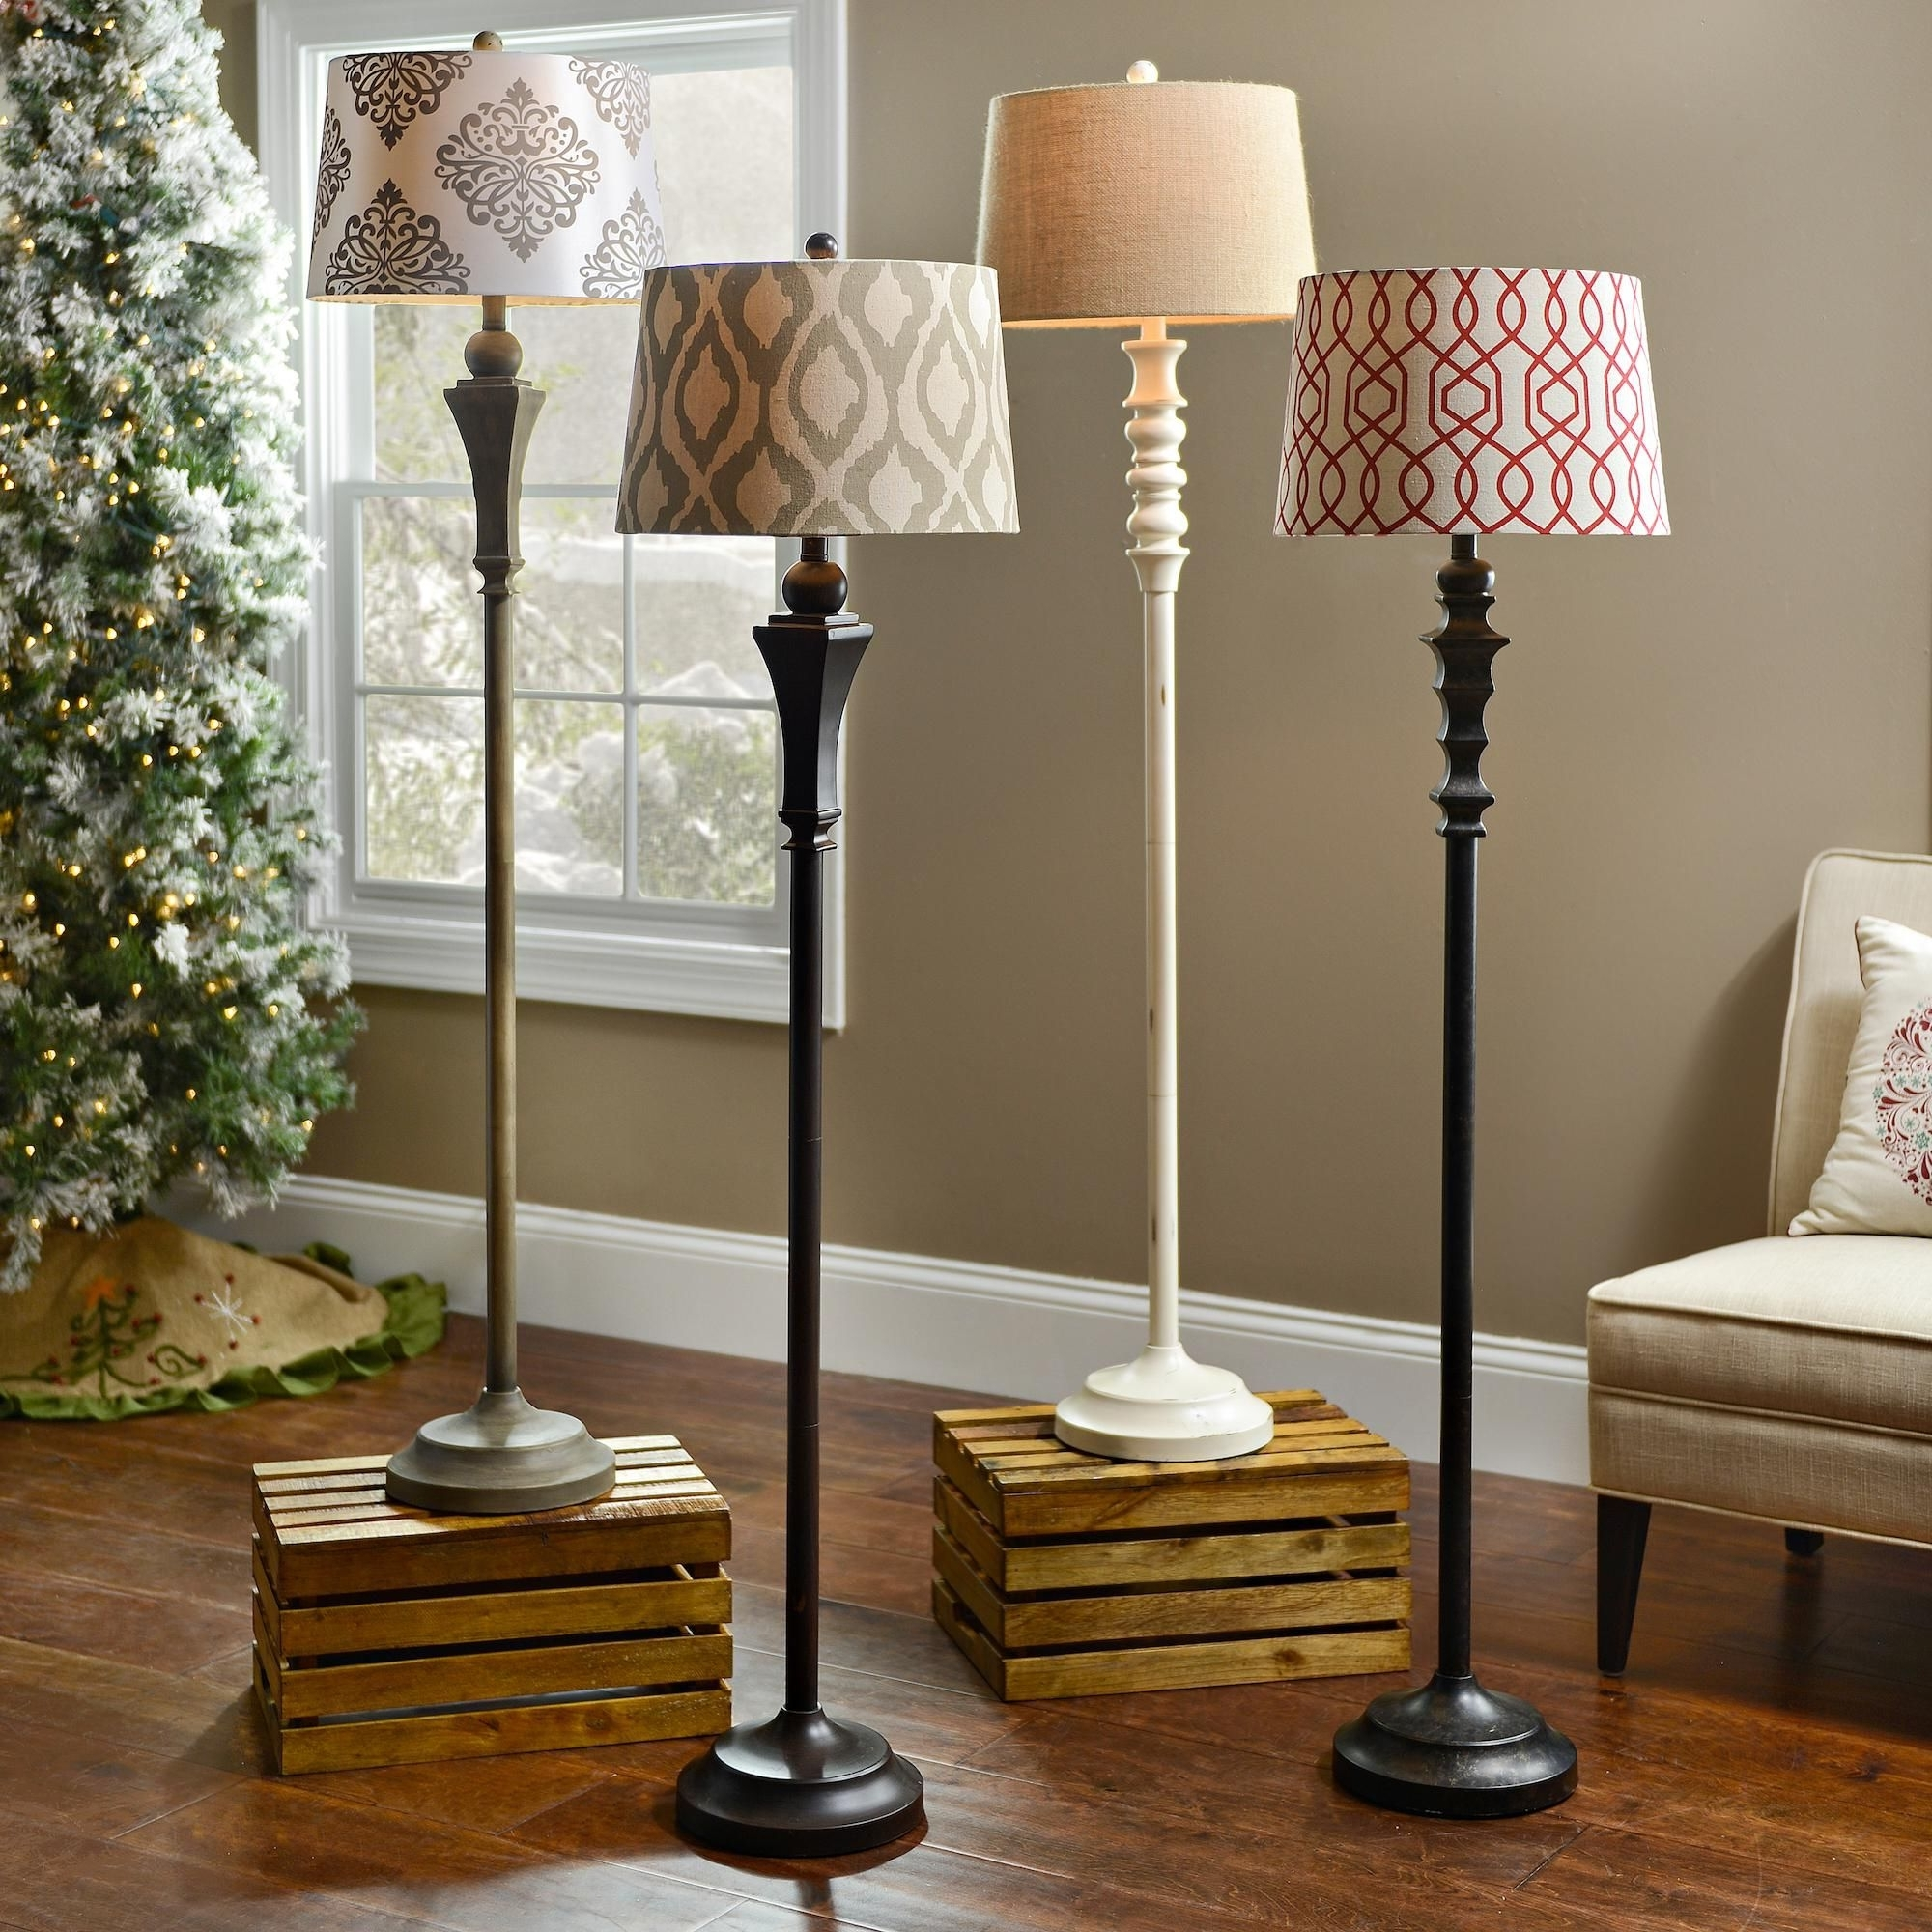 Living Room Table Lamps Intended For Latest Add Light To A Dim Corner With A Stylish Floor Lamp! (View 14 of 15)